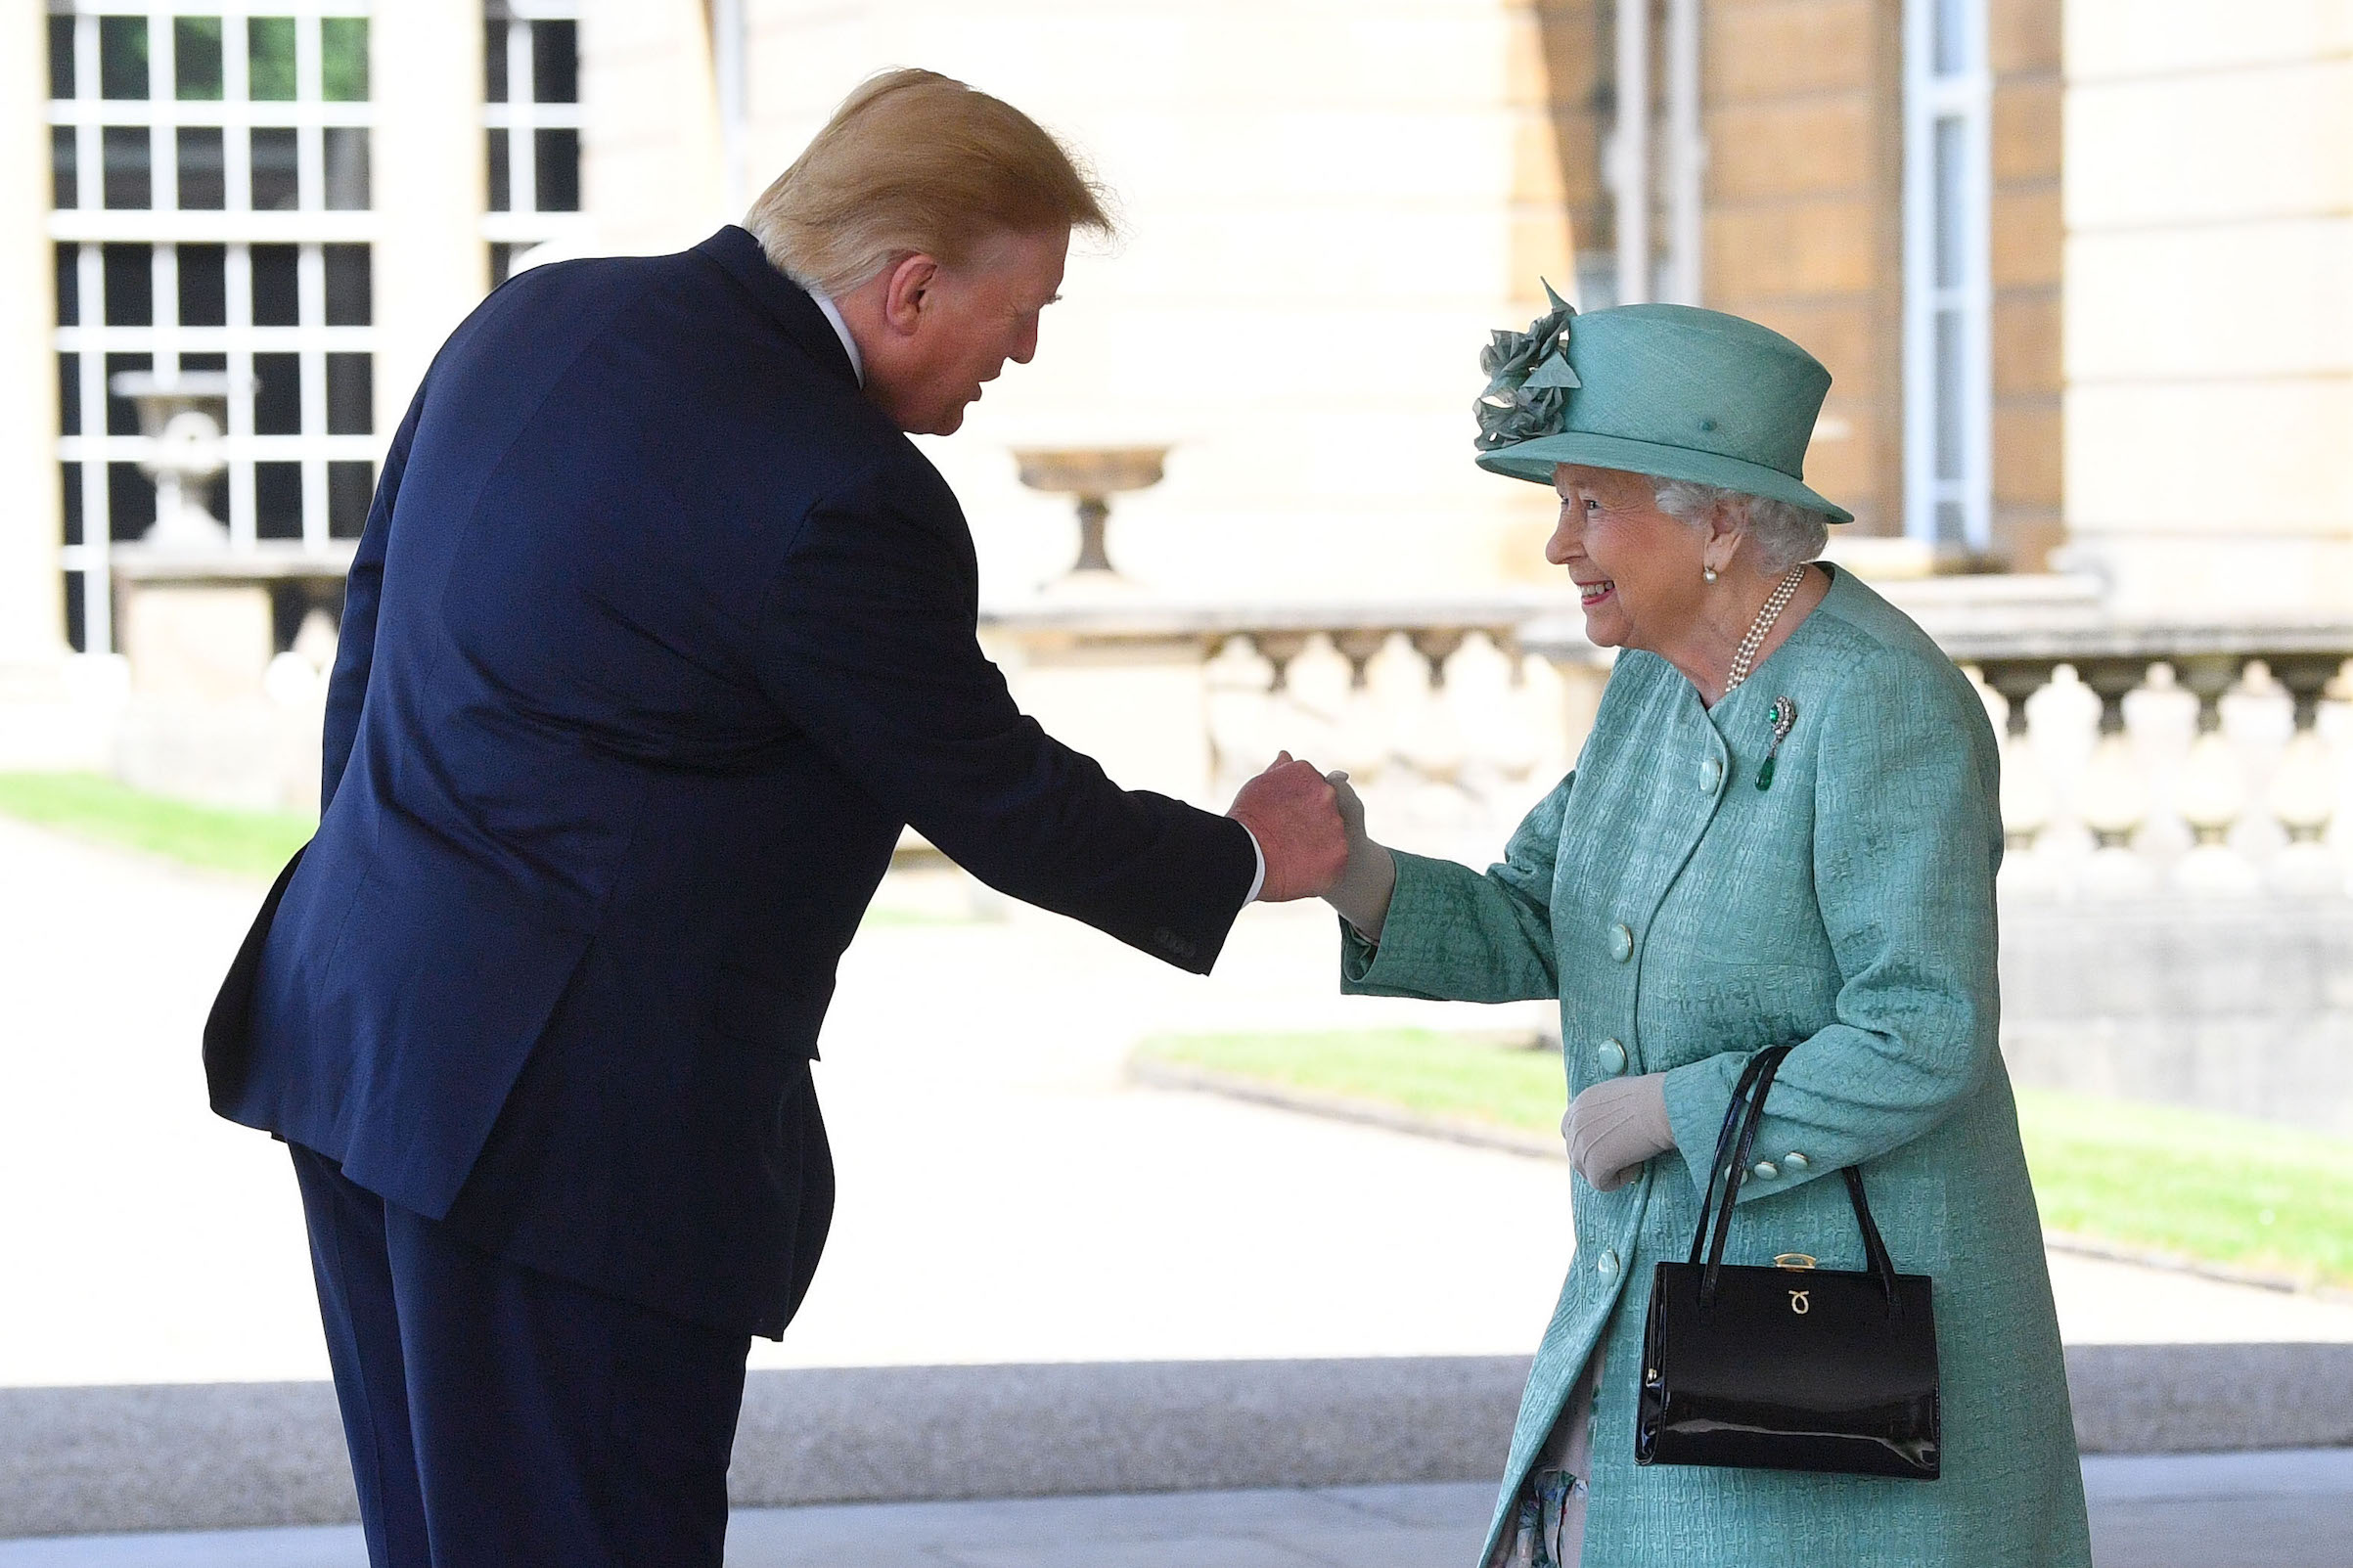 Queen Elizabeth II greets US President Donald Trump as he arrives for the Ceremonial Welcome at Buckingham Palace, London, on day one of his three day state visit to the U.K. on June 3, 2019.